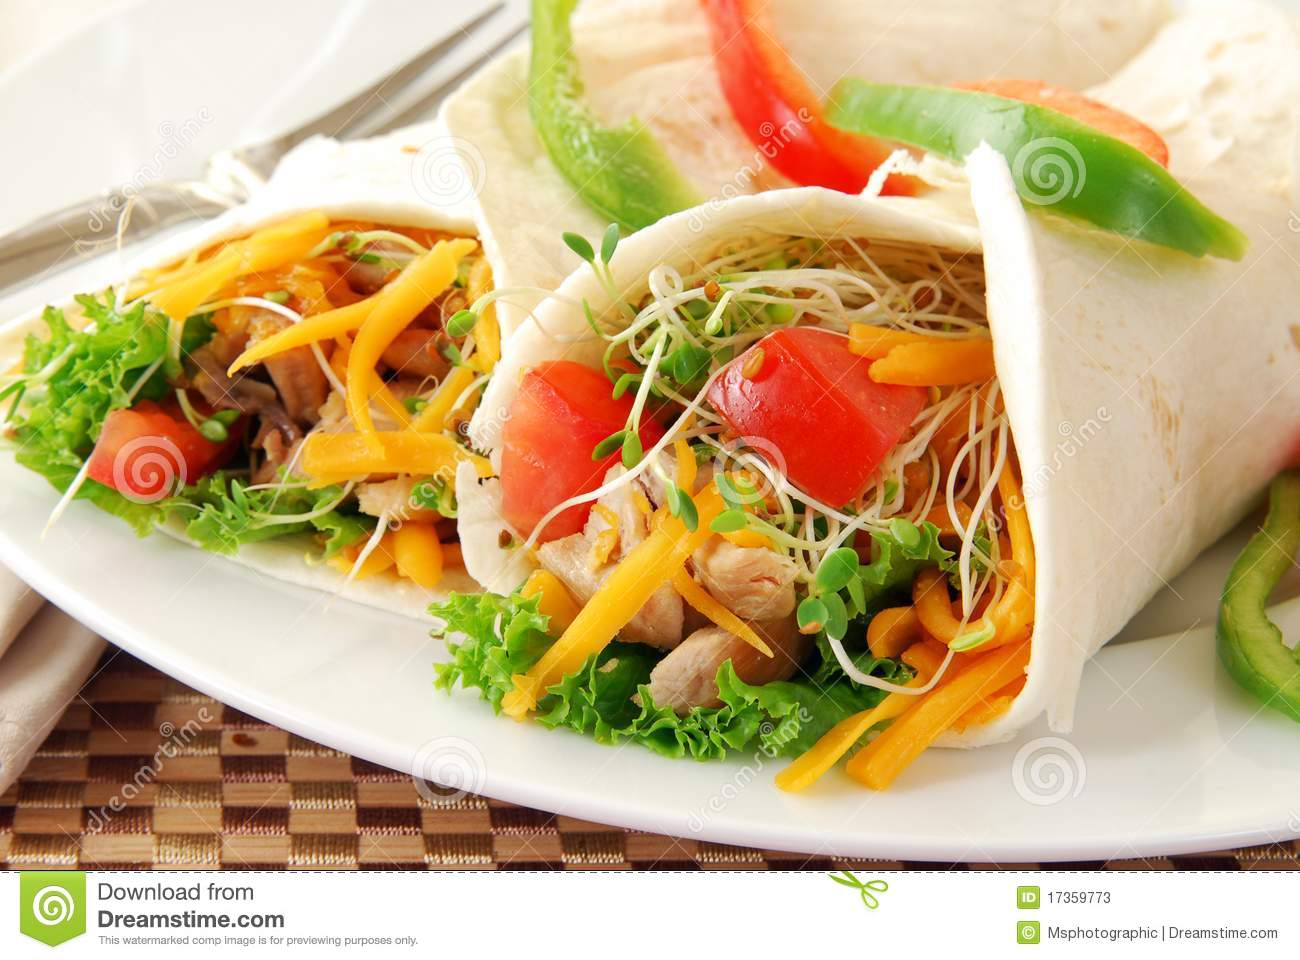 Chicken and vegetables wrapped in tortilla shells.